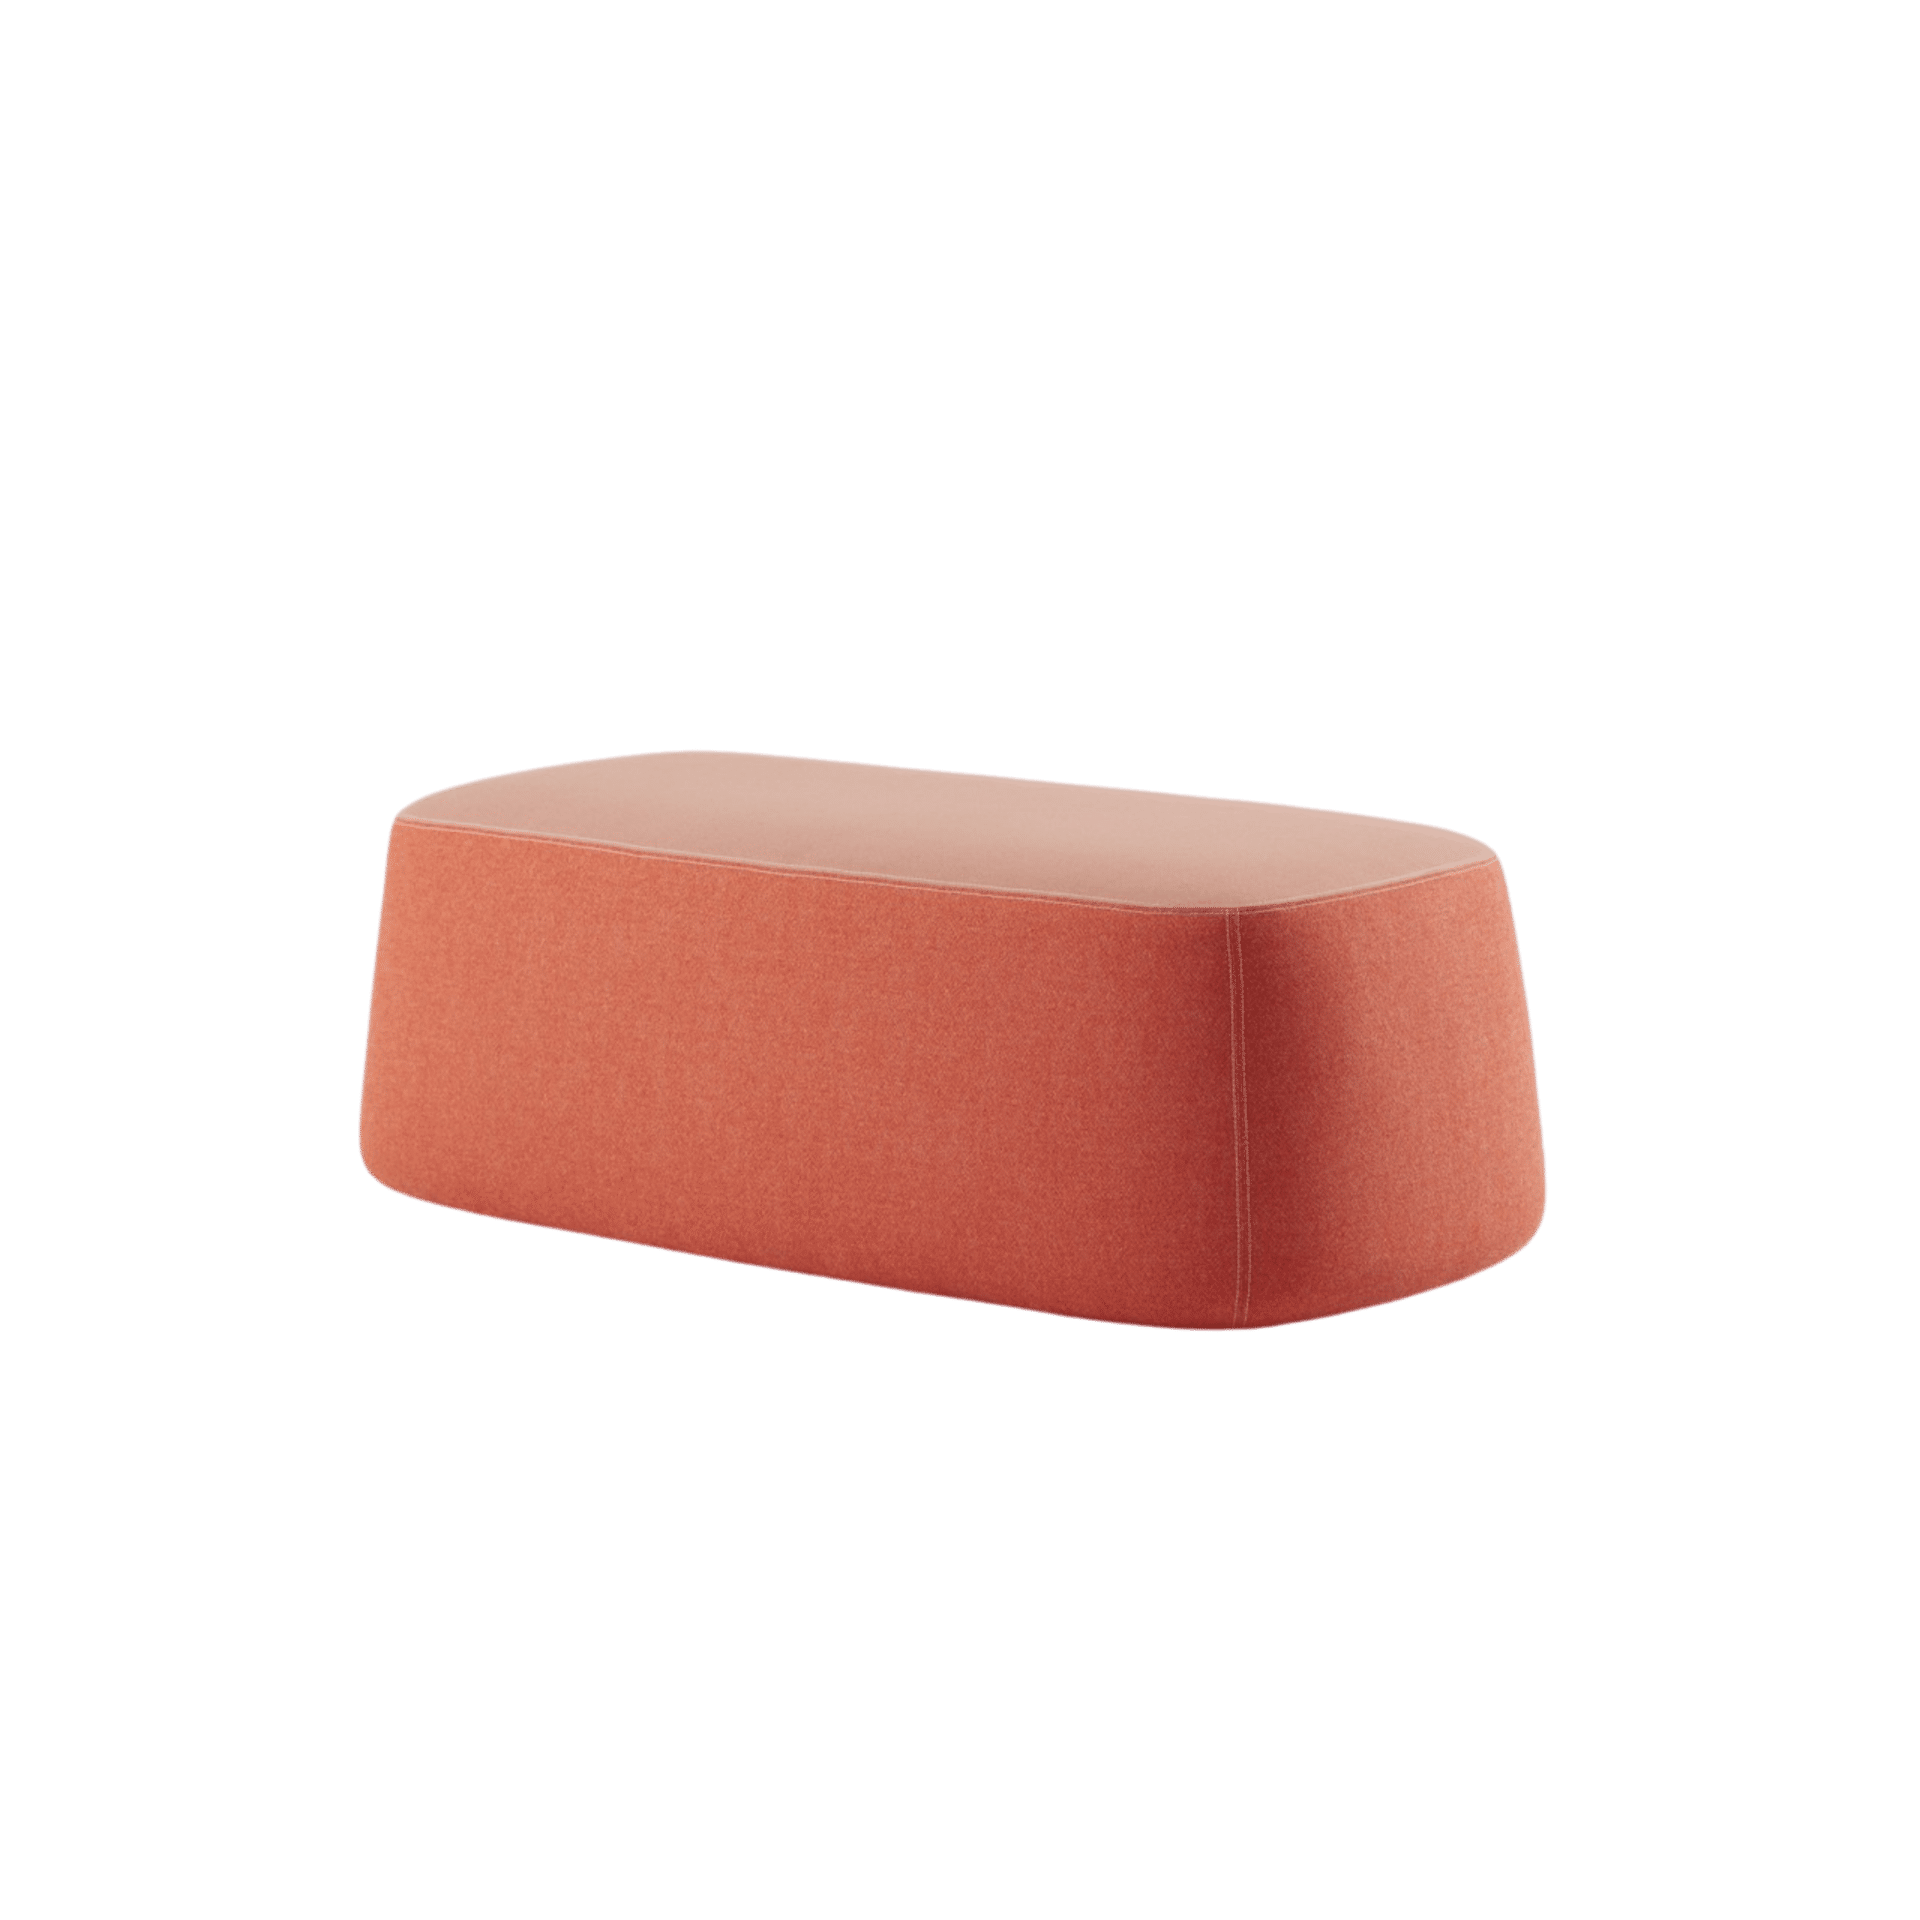 products_openest_chick_pouf_rectangle